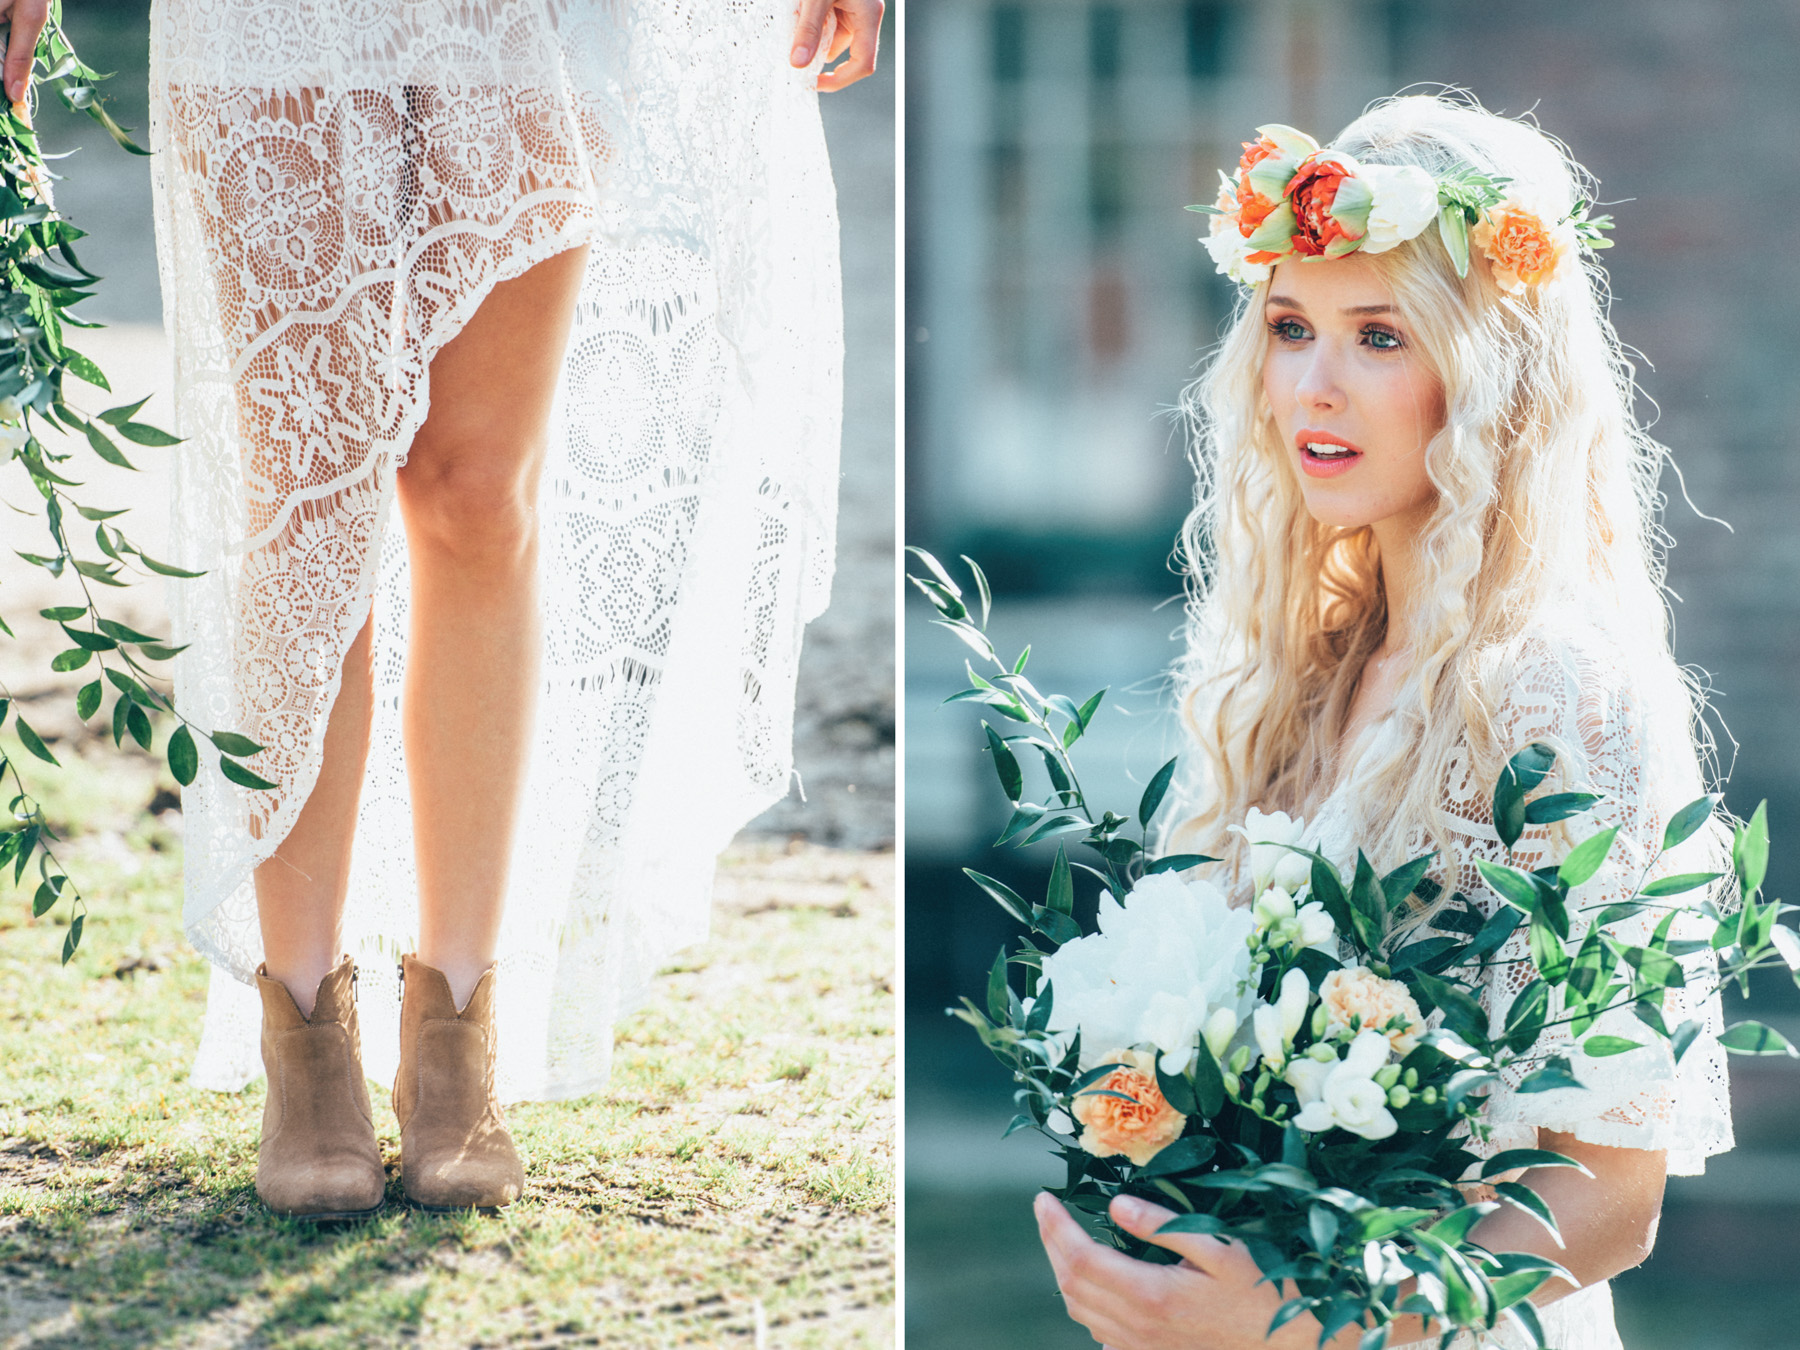 bohemian-hippie-wedding-19 Boho-Hippie Bride Styleshooting auf dem Ponyhofbohemian hippie wedding 19